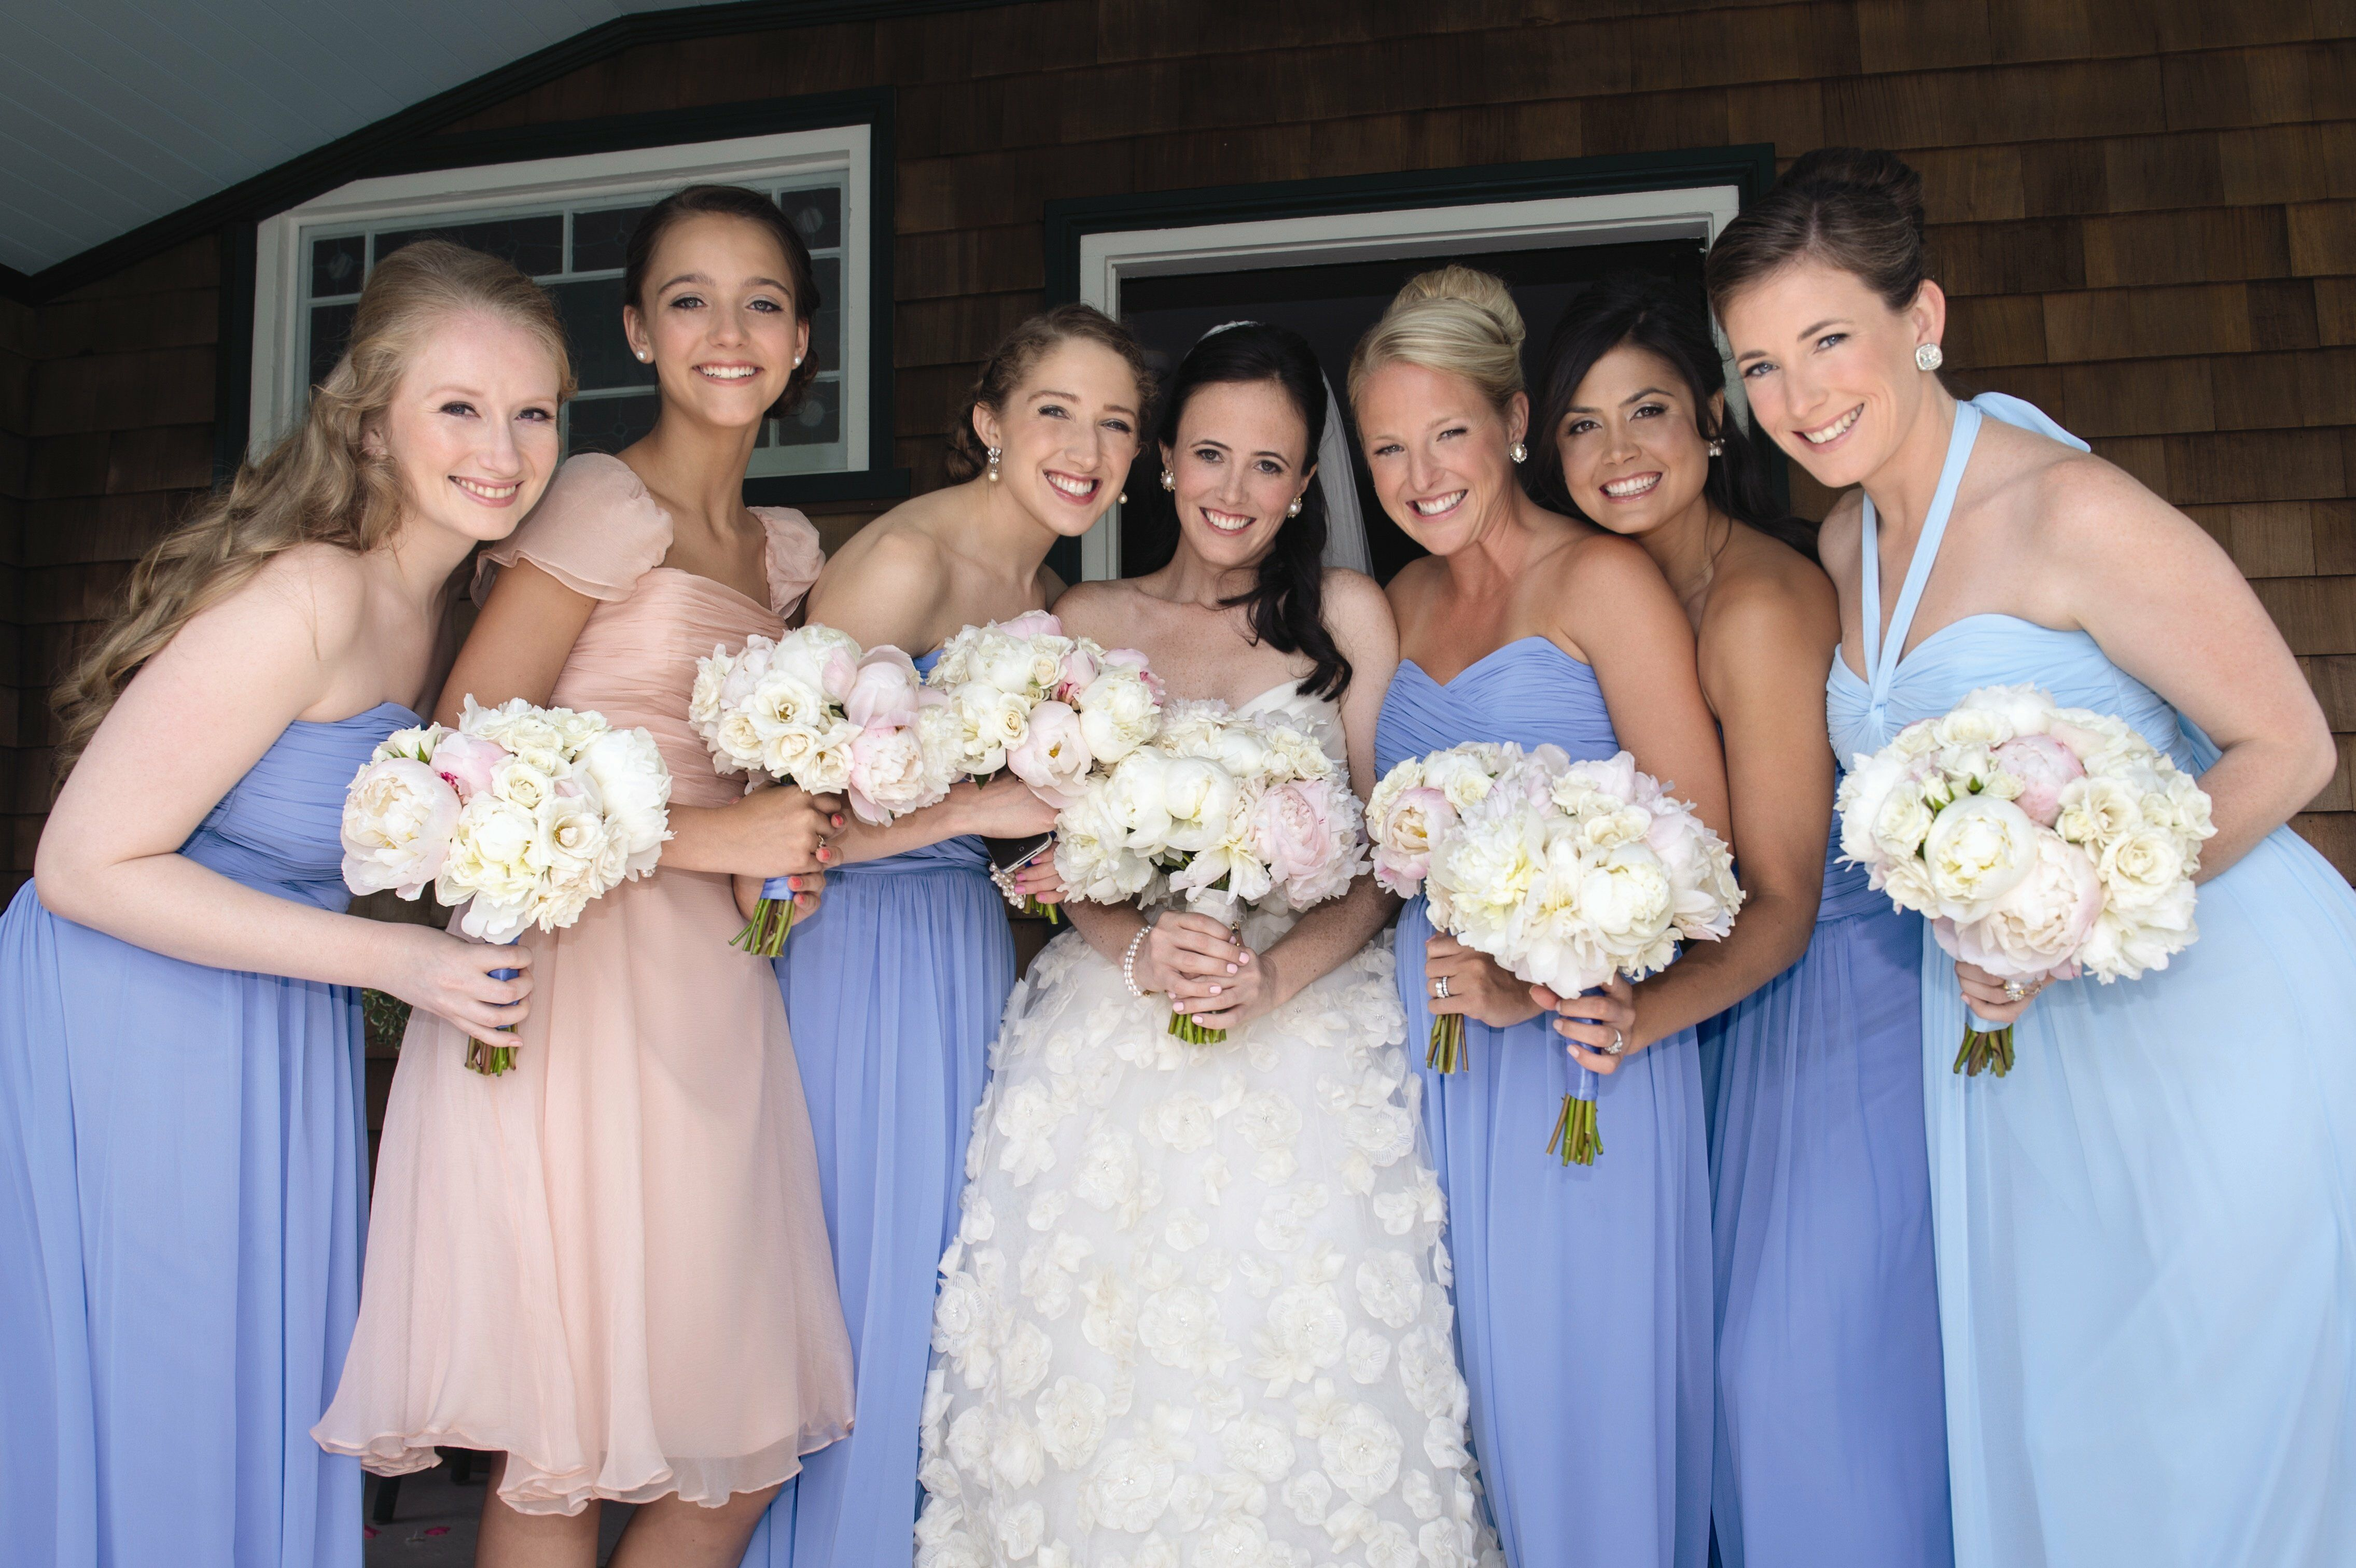 Styling periwinkle bridesmaid dresses for your wedding 28 images styling periwinkle bridesmaid dresses for your wedding periwinkle bridesmaid dresses ombrellifo Images